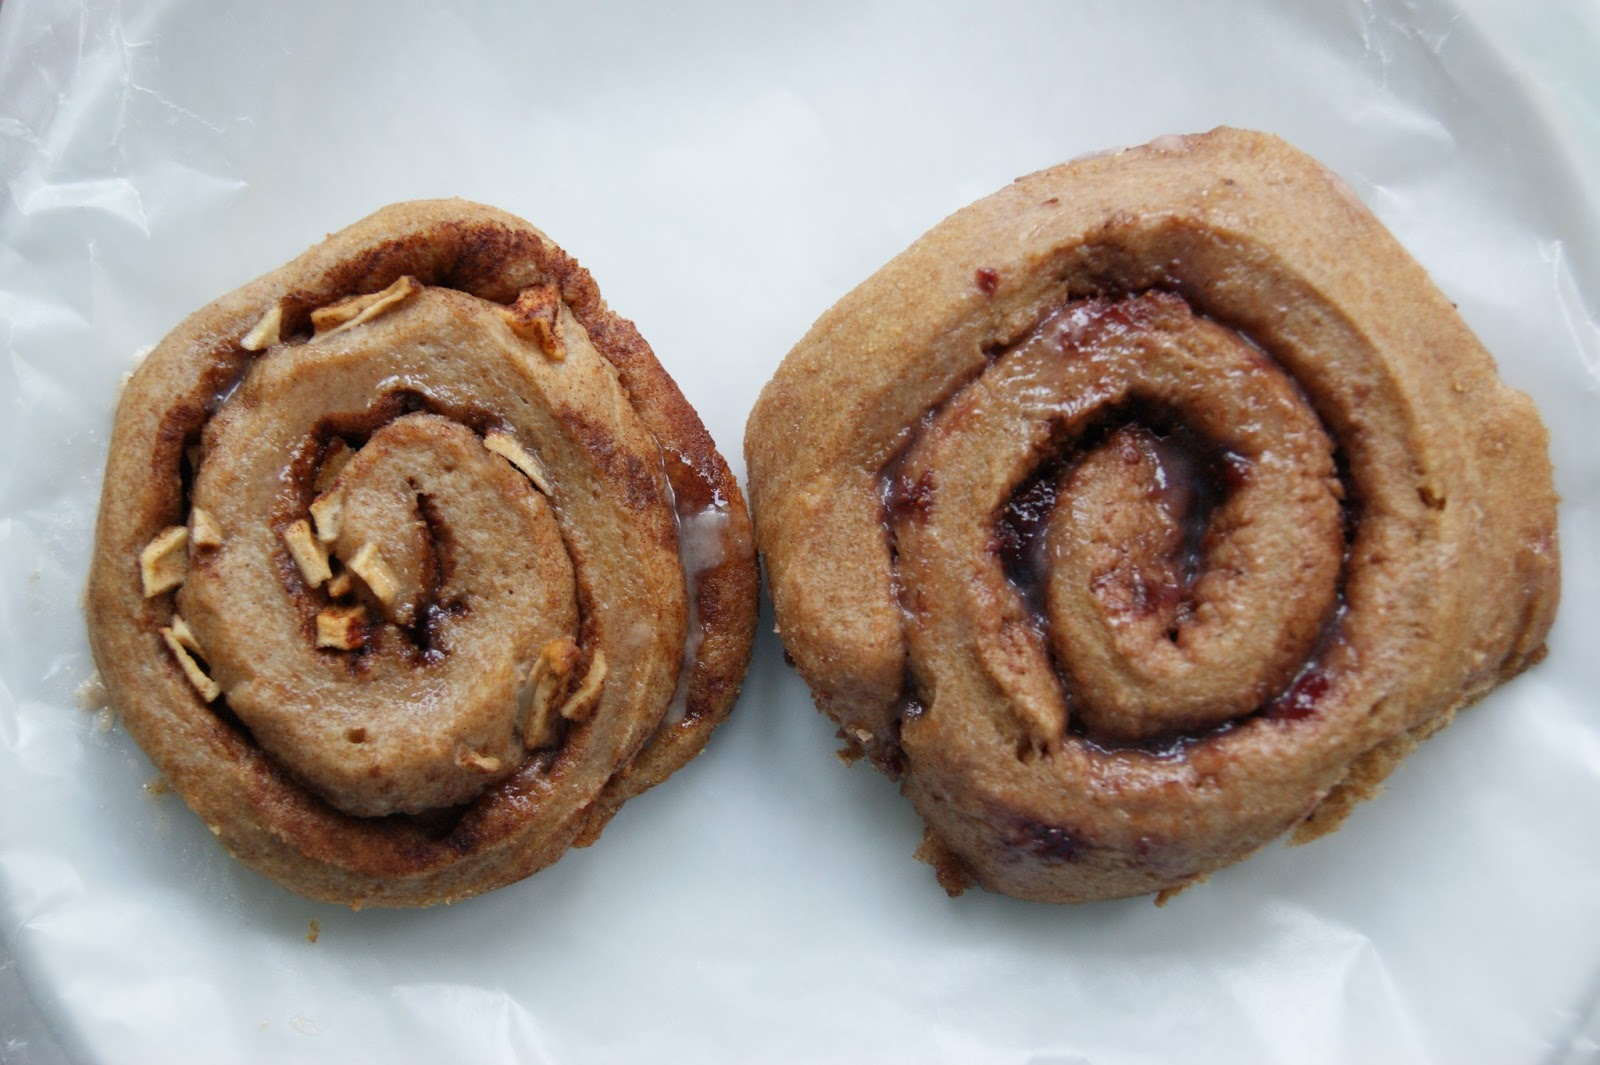 cinnamon buns Try these easy cinnamon rolls with vanilla icing as a treat for afternoon tea they're delicious served warm or cold – you can also make them ahead and freeze.